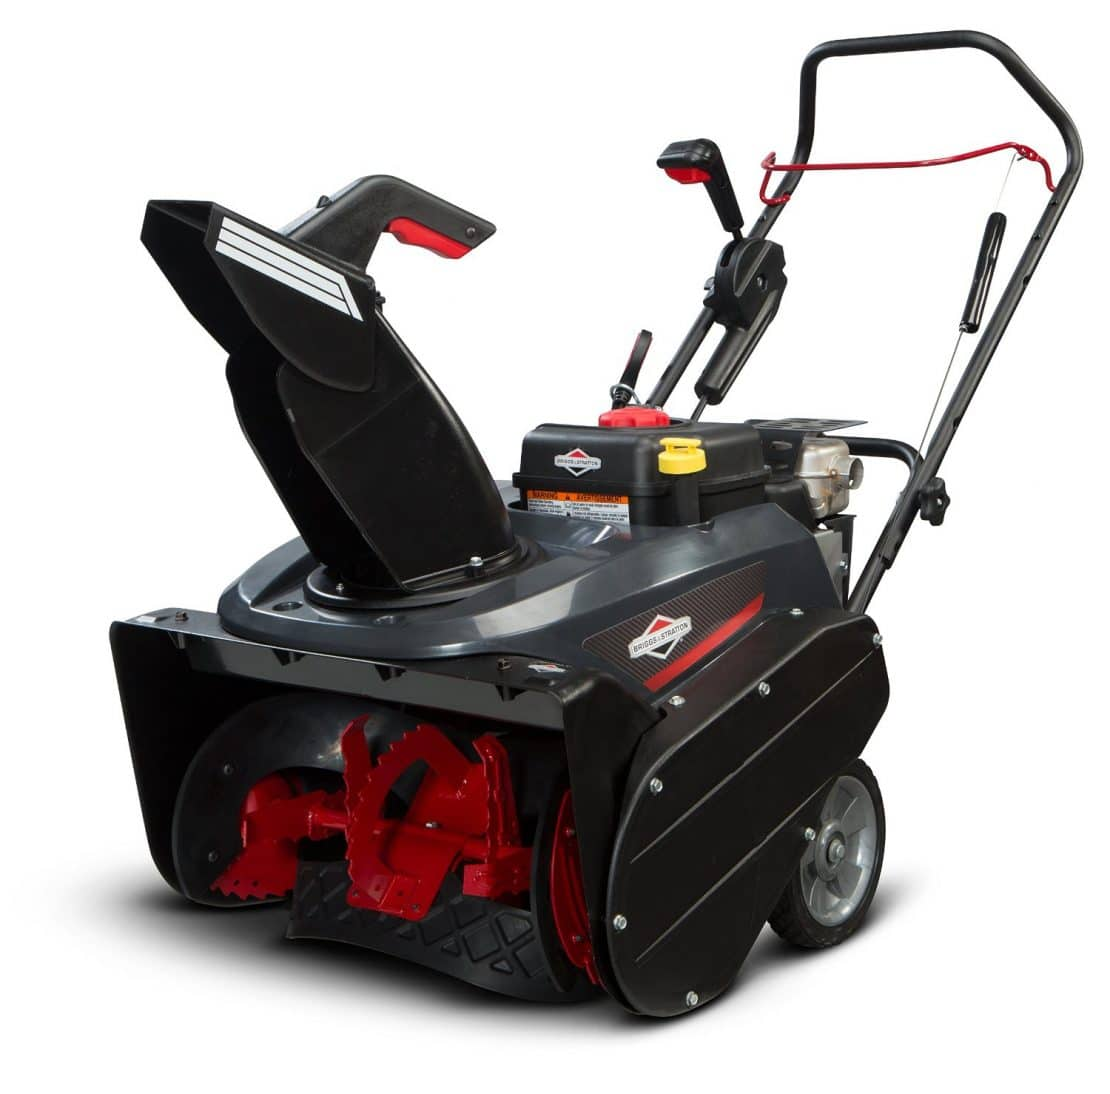 Buying A New Snow Blower FAQS Read This For The Truth